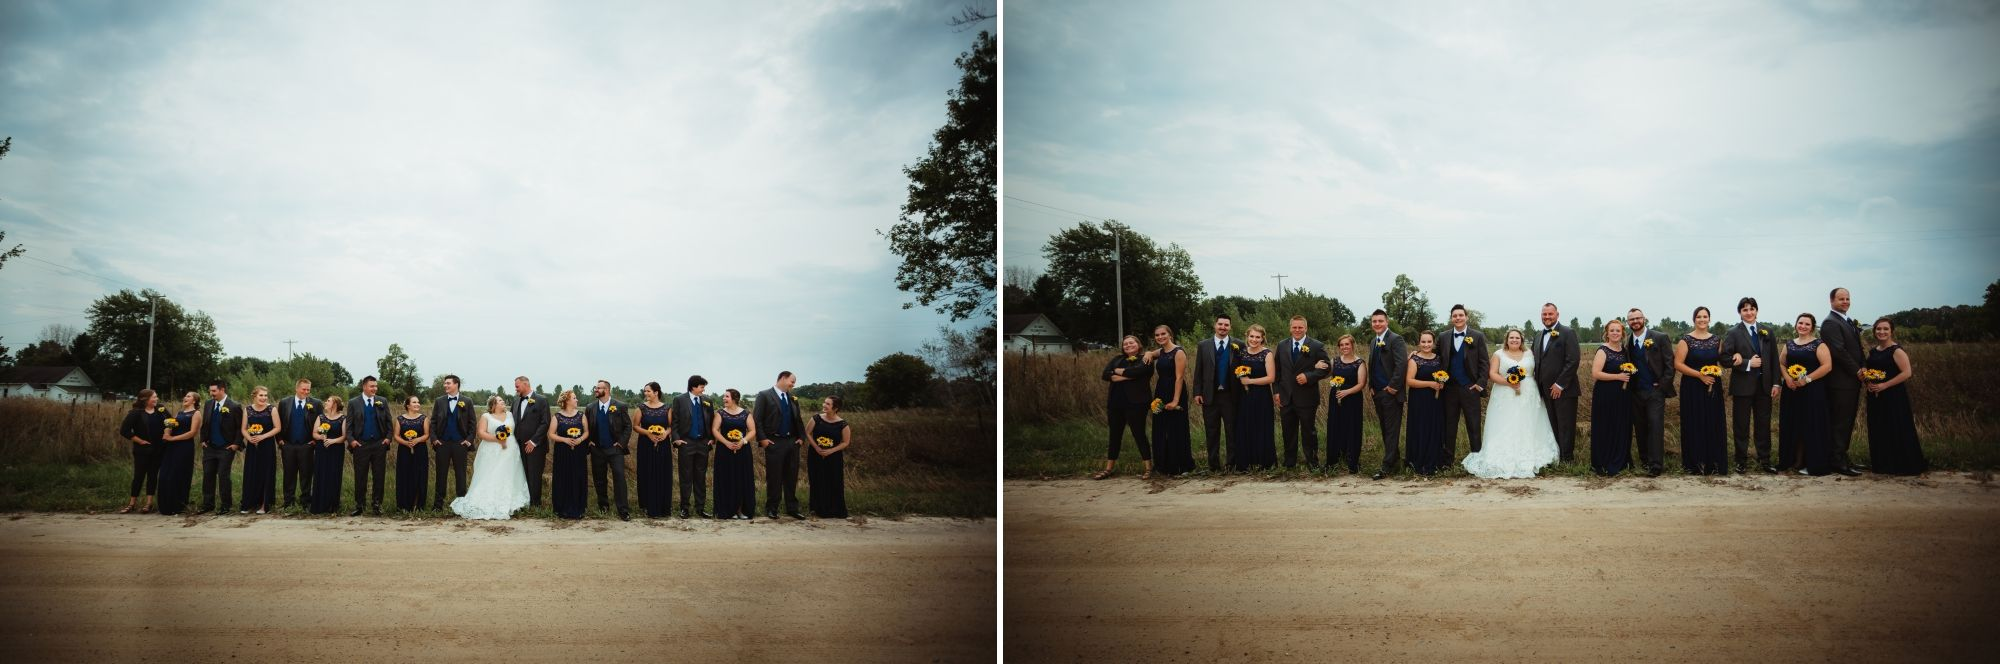 Wedding party smiling lined up on the side of a dirt road.